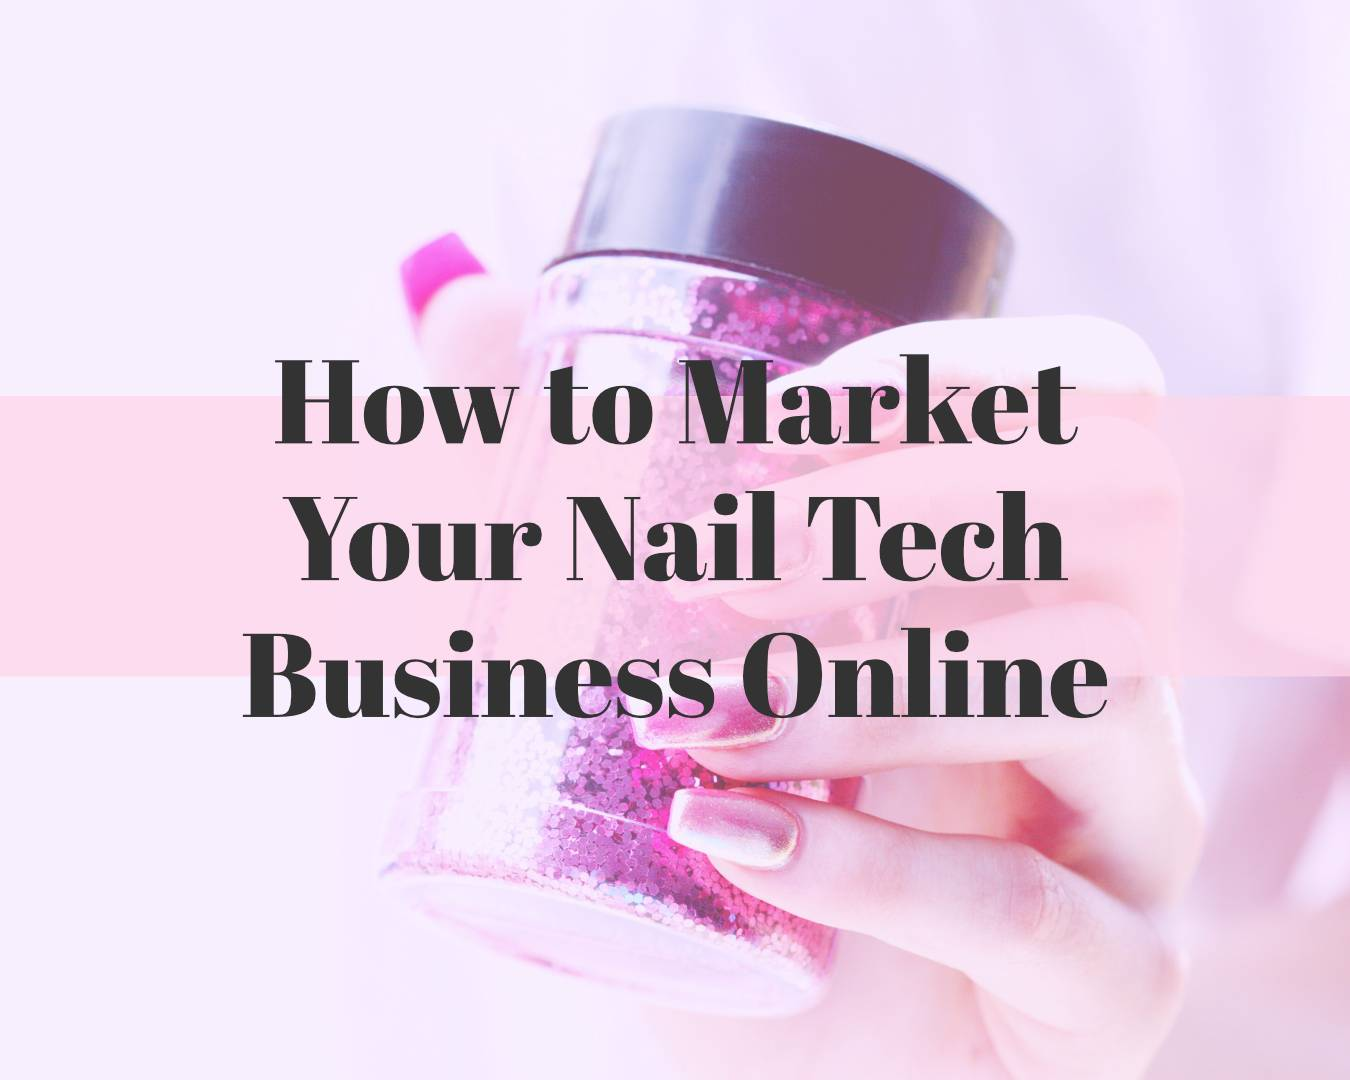 How to Market Your Nail Tech Business Online